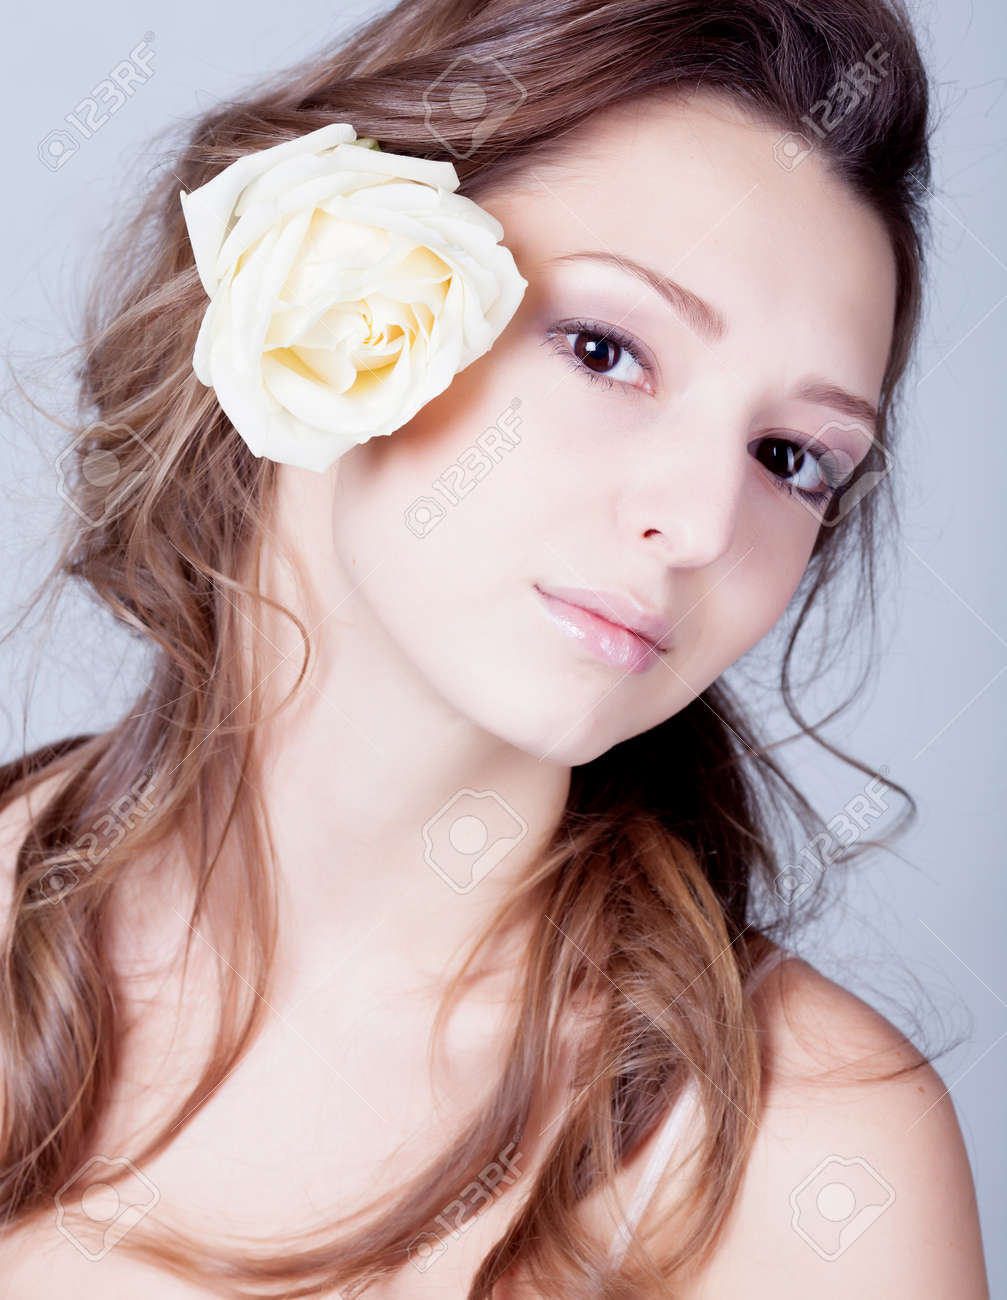 Girl with rose flower in hair Stock Photo - 12326289